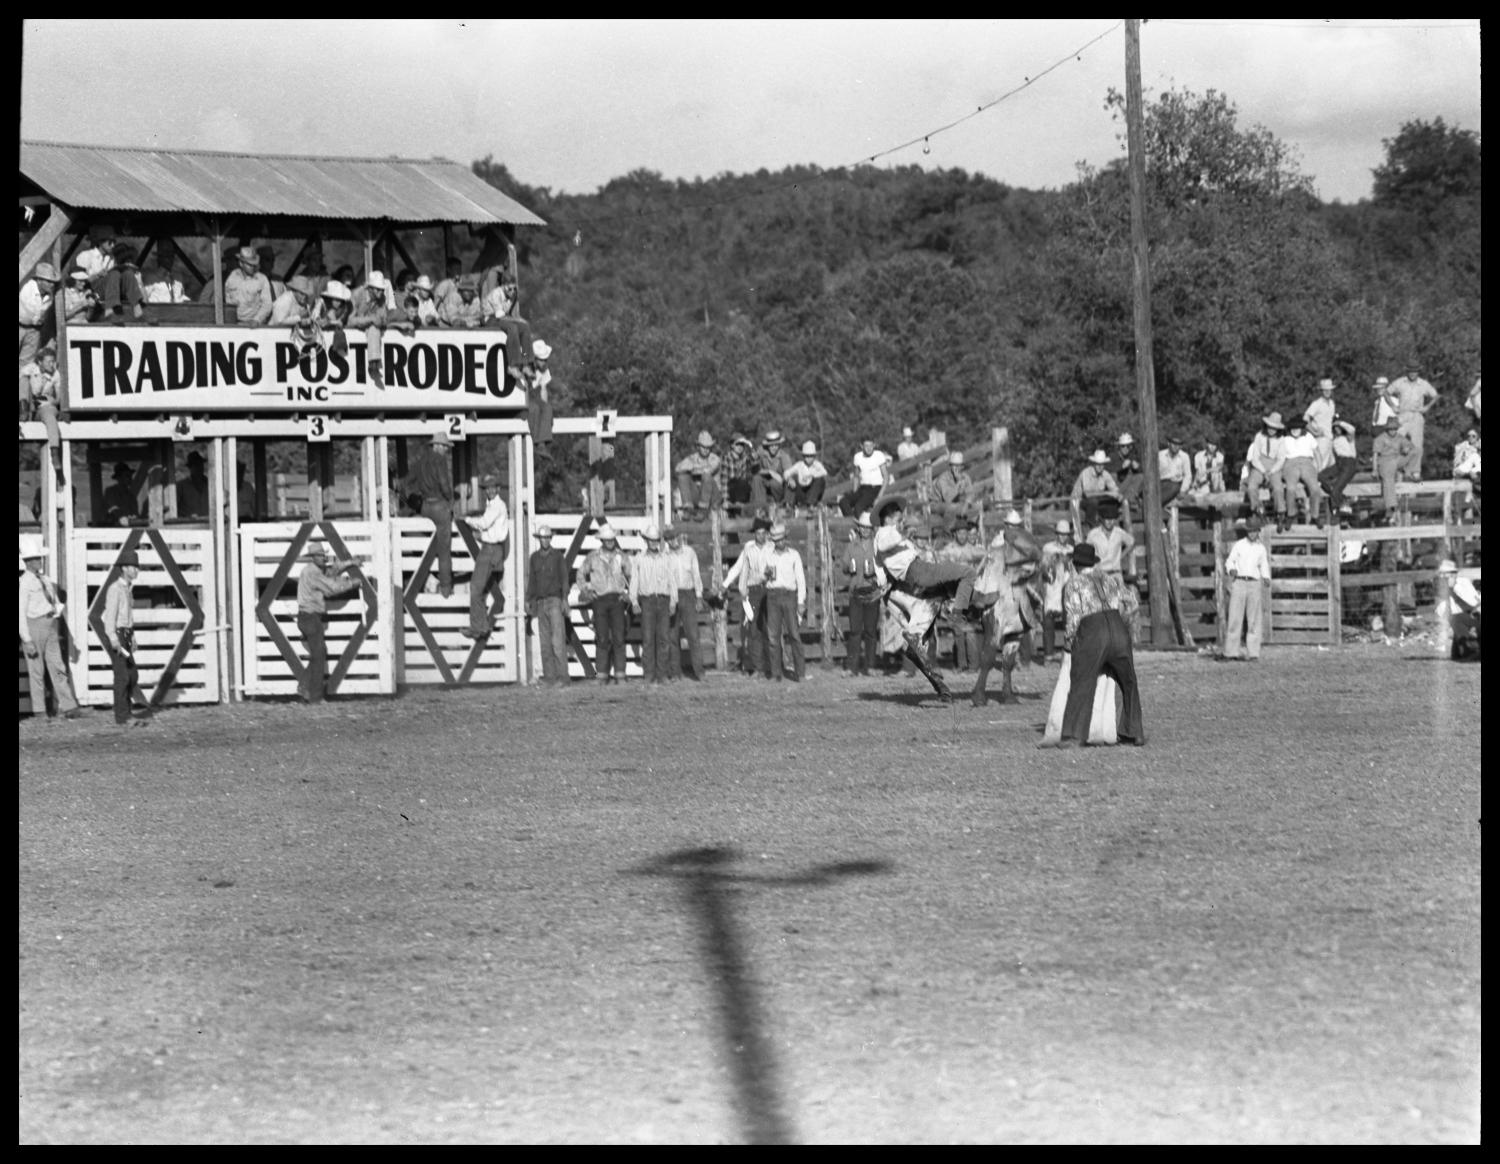 Johnson S Trading Post Rodeo Side 1 Of 1 The Portal To